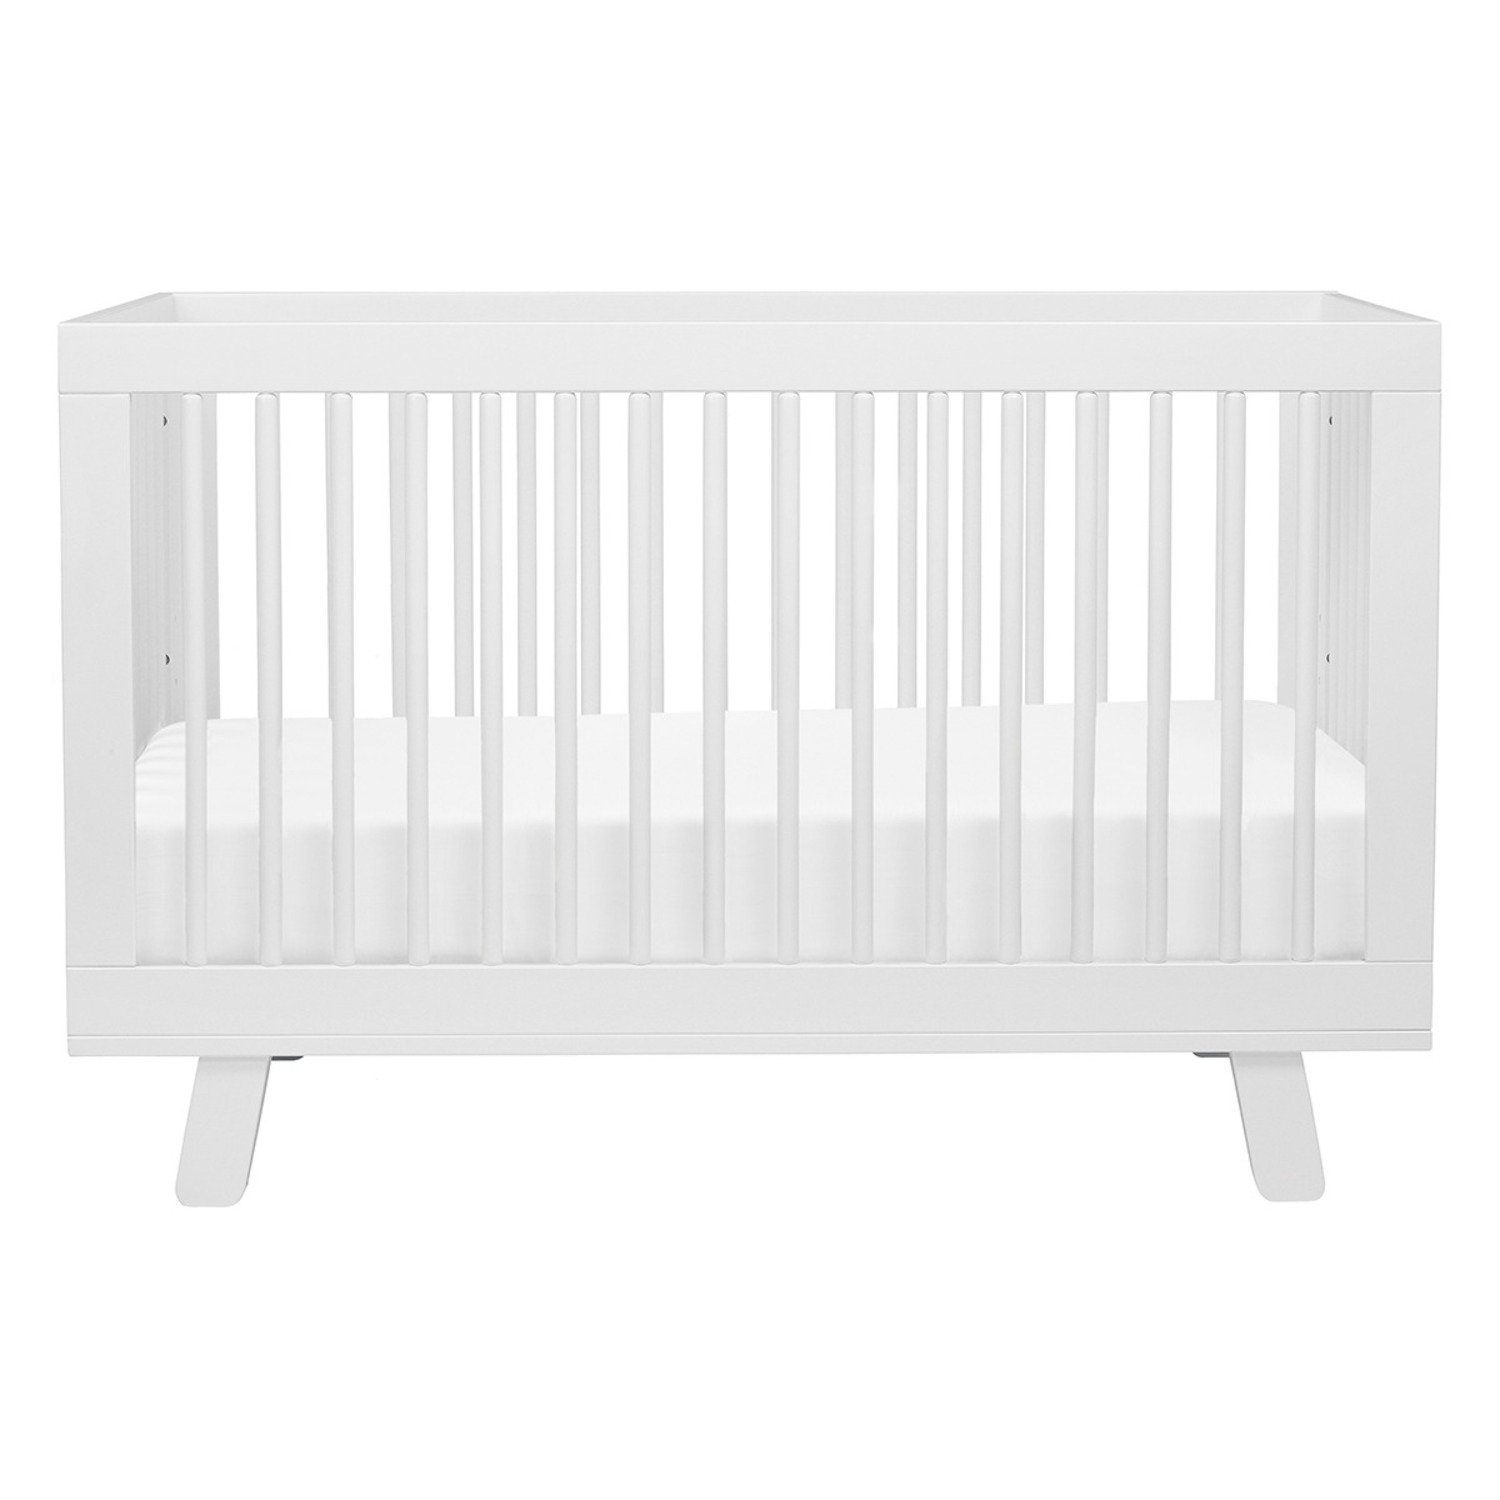 Babyletto Hudson 3-in-1 Convertible Crib in White - image-1